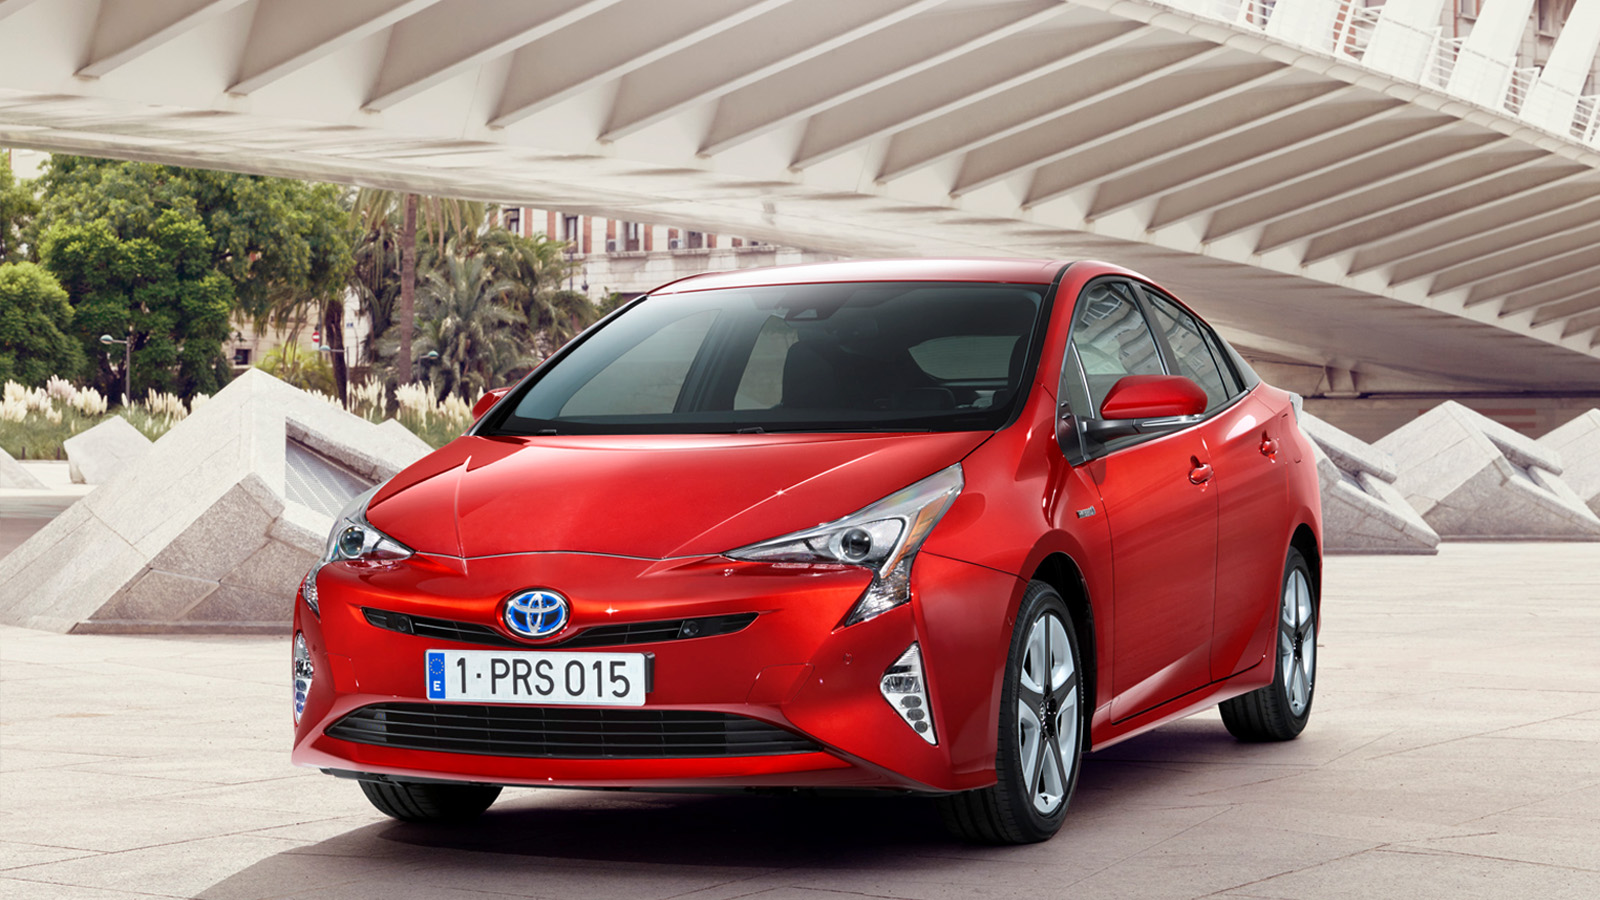 Toyota Prius takes a bold step forward